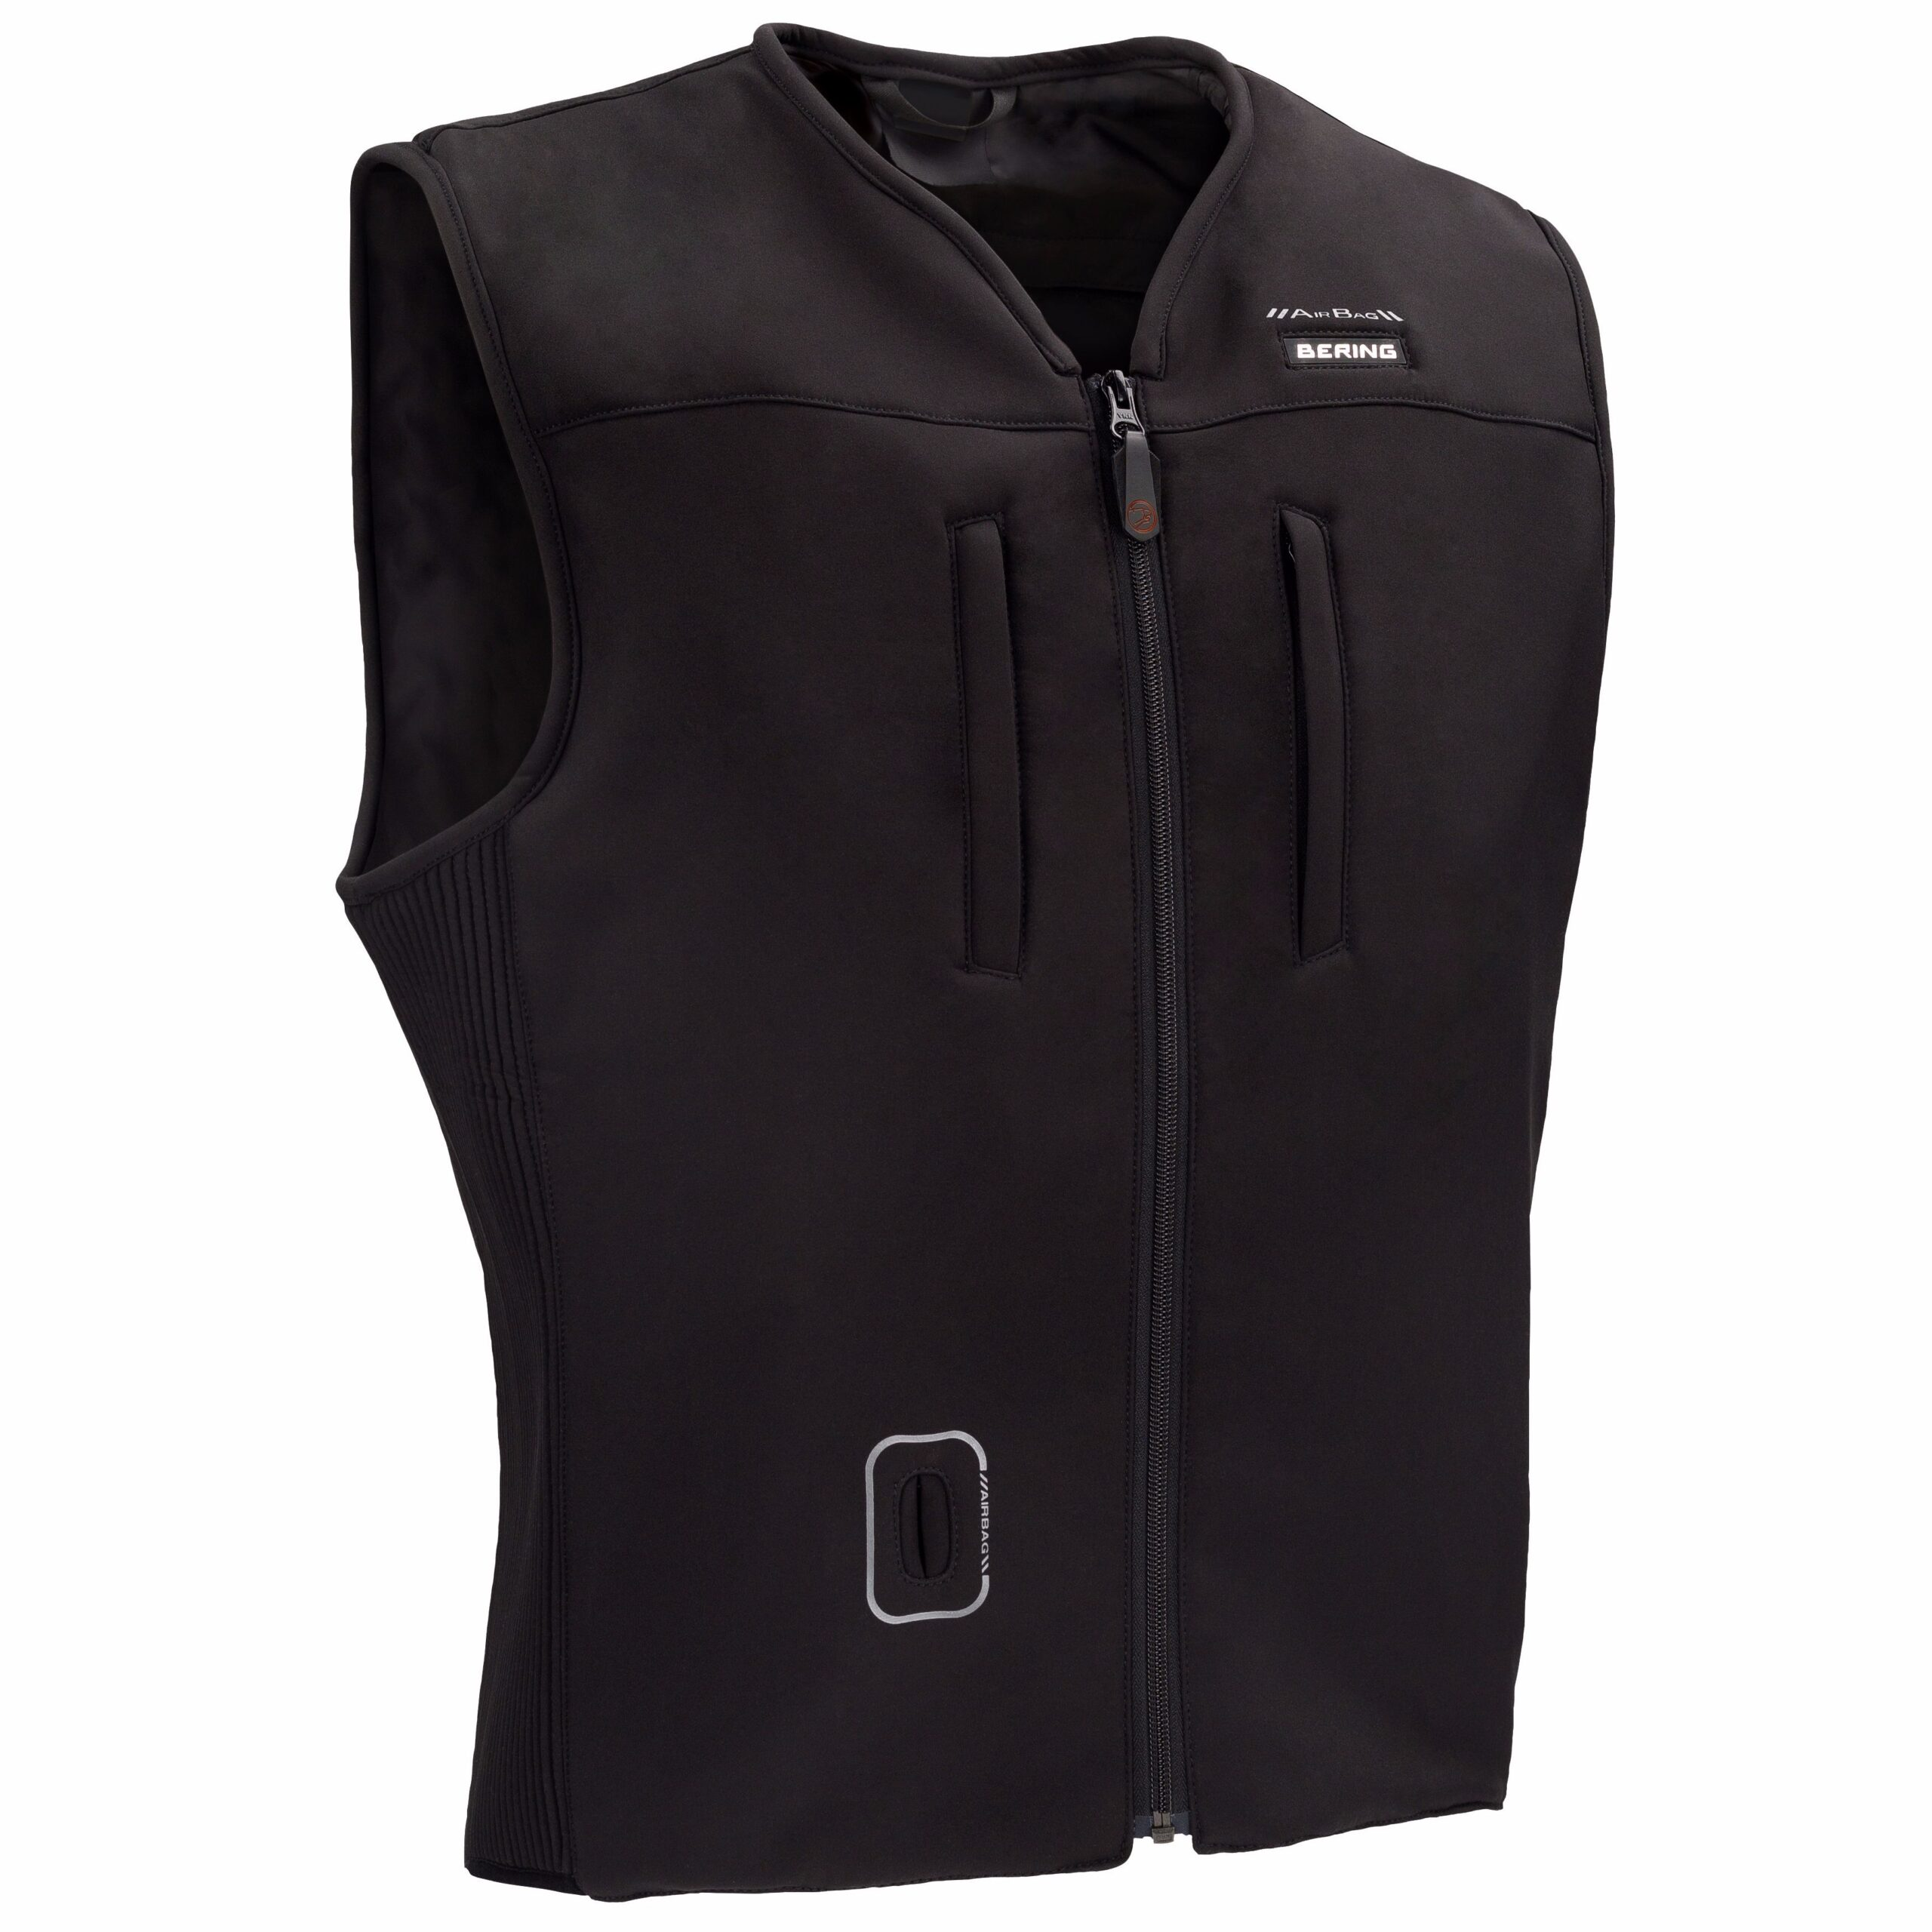 GILET AIRBAG BERIN C-PROTECT AIR